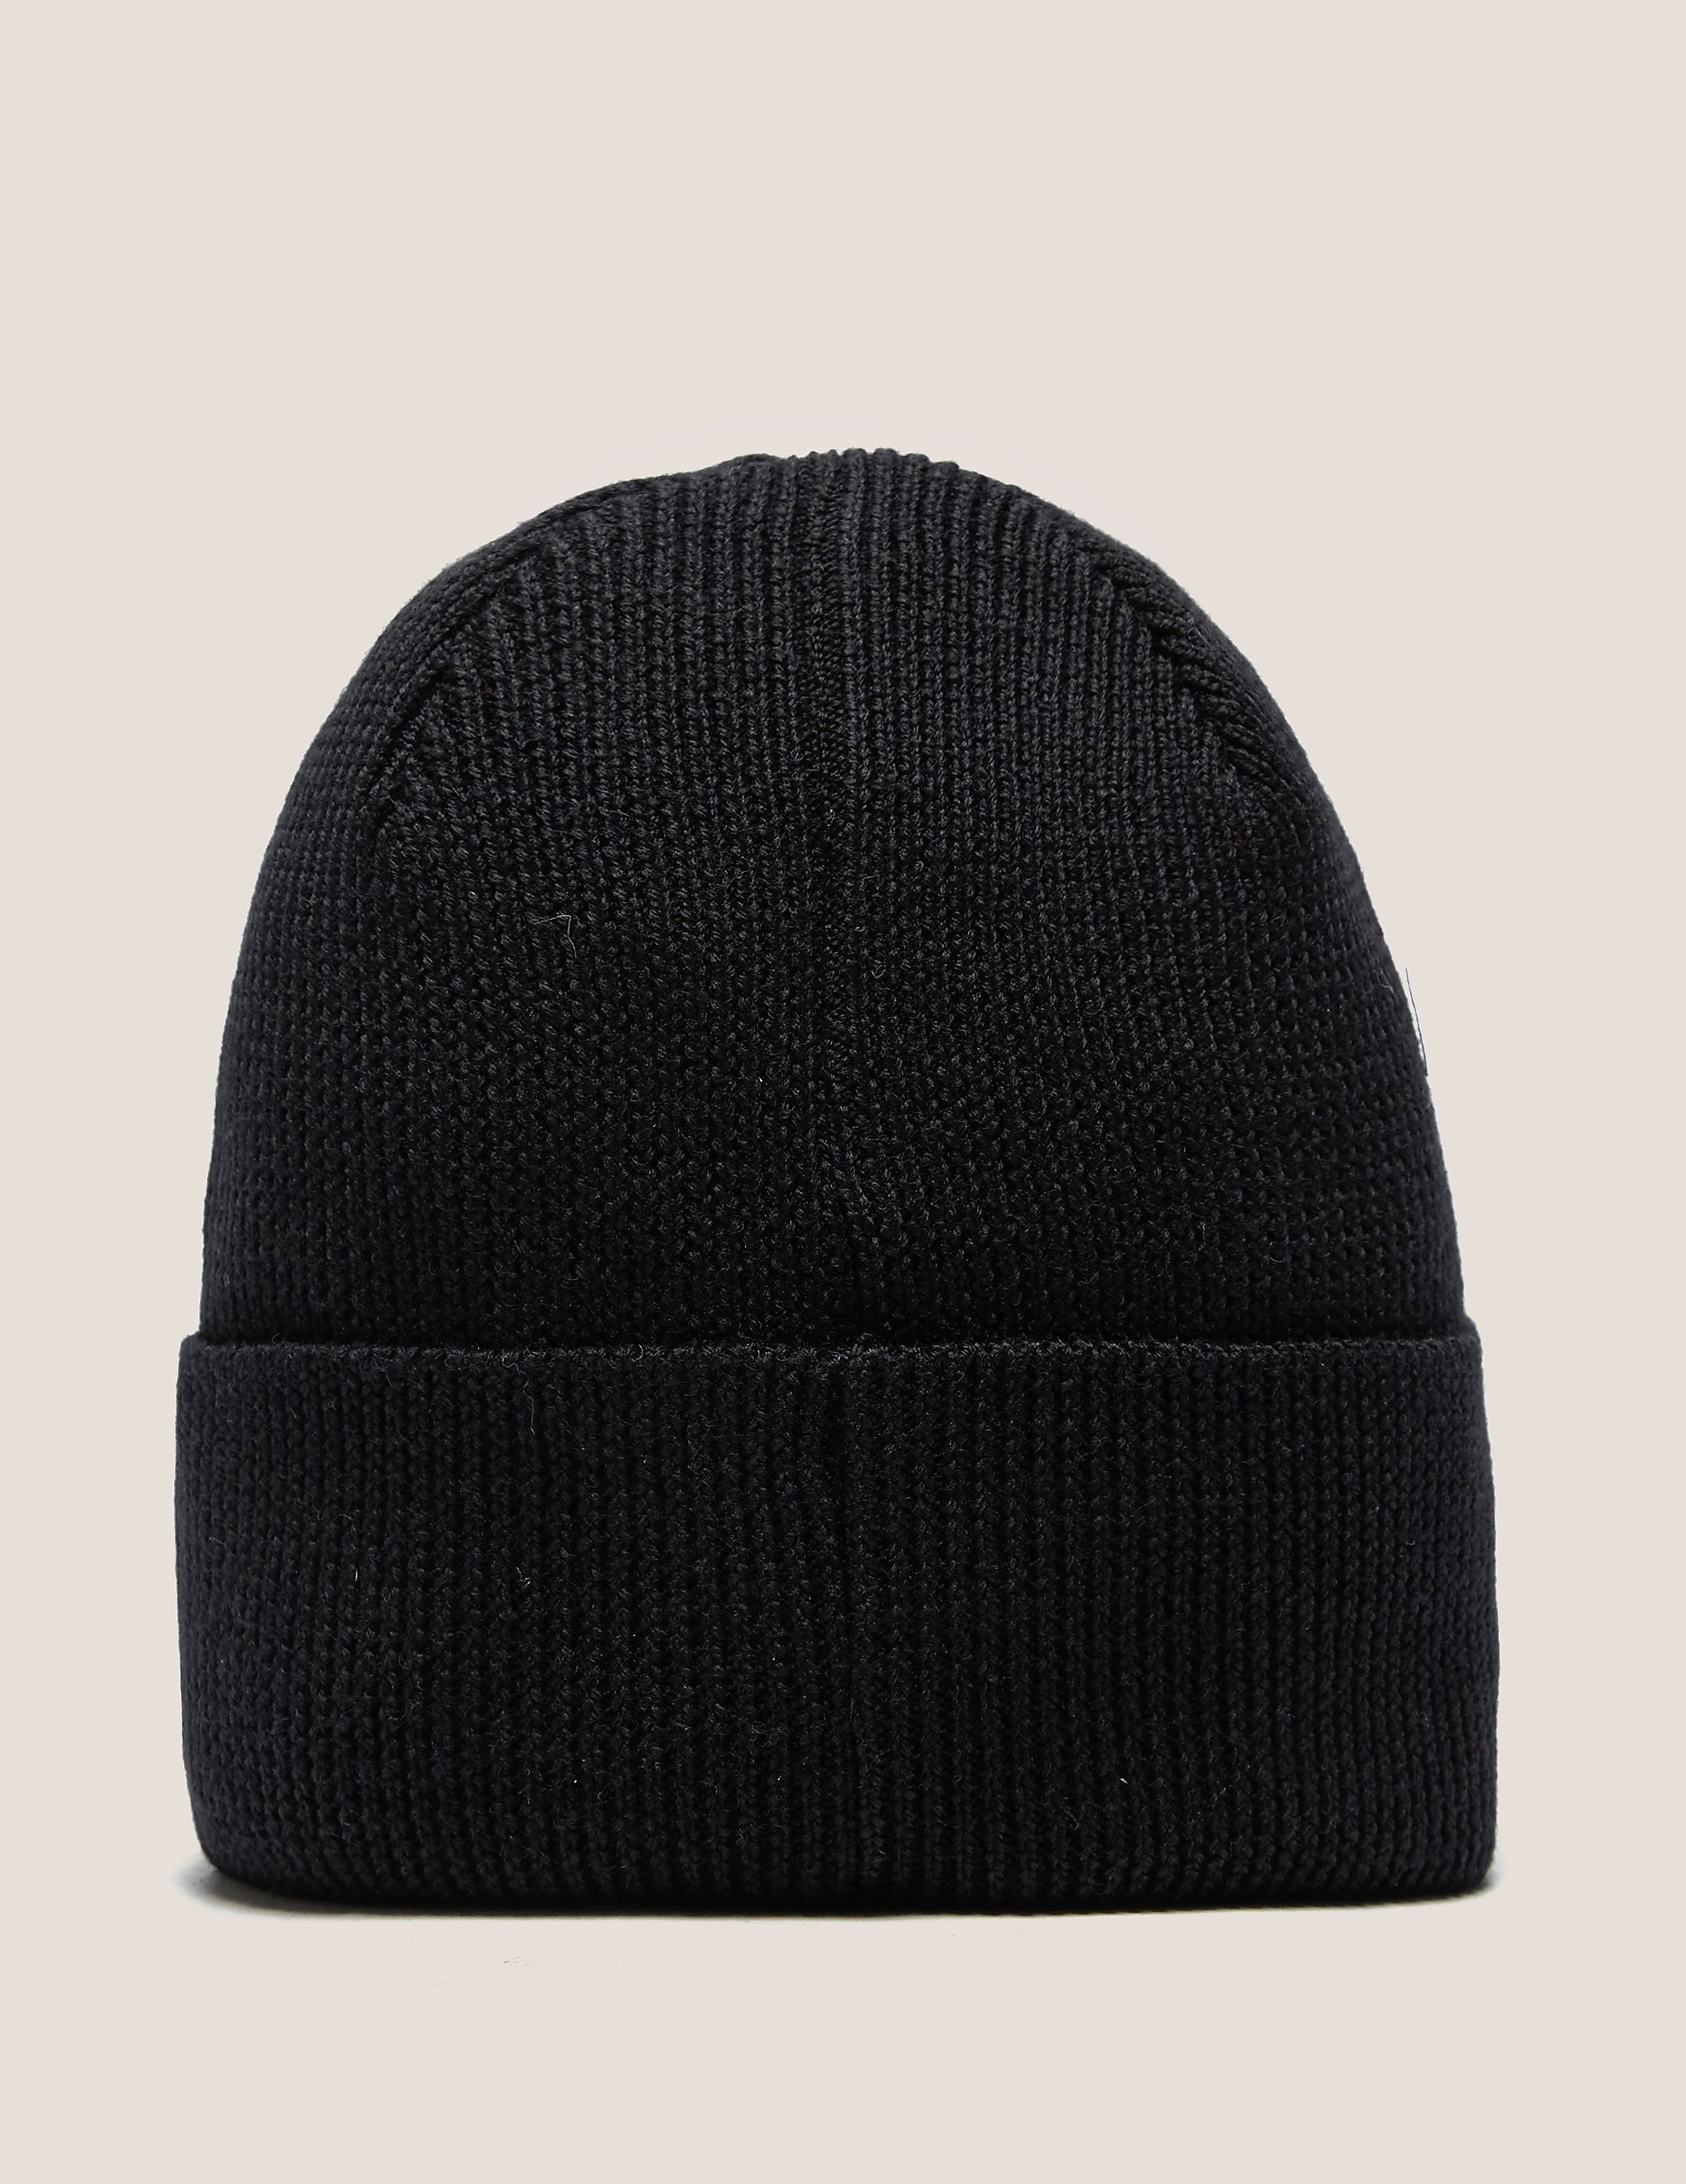 Paul Smith Merino Wool Beanie